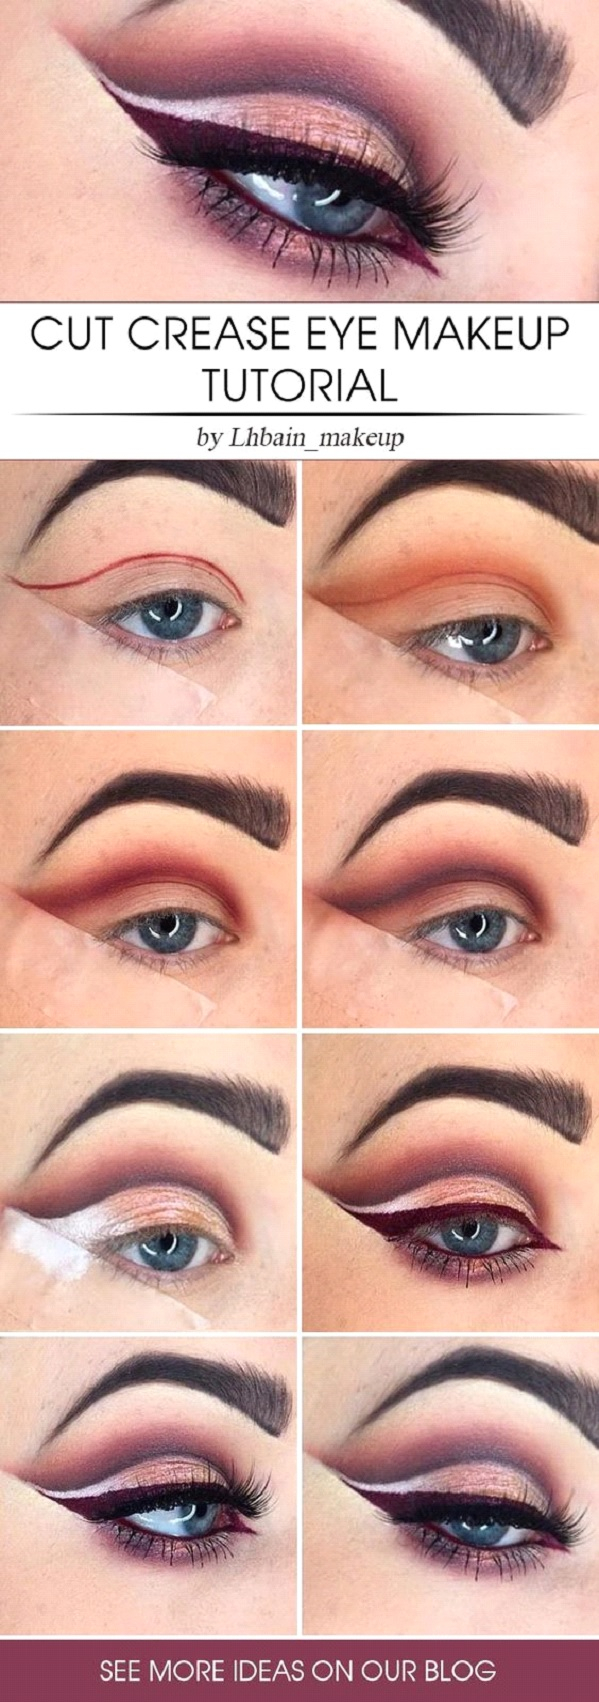 Cut Crease Eye Makeup Cut Crease Eye Makeup Tutorial Makeup Mania